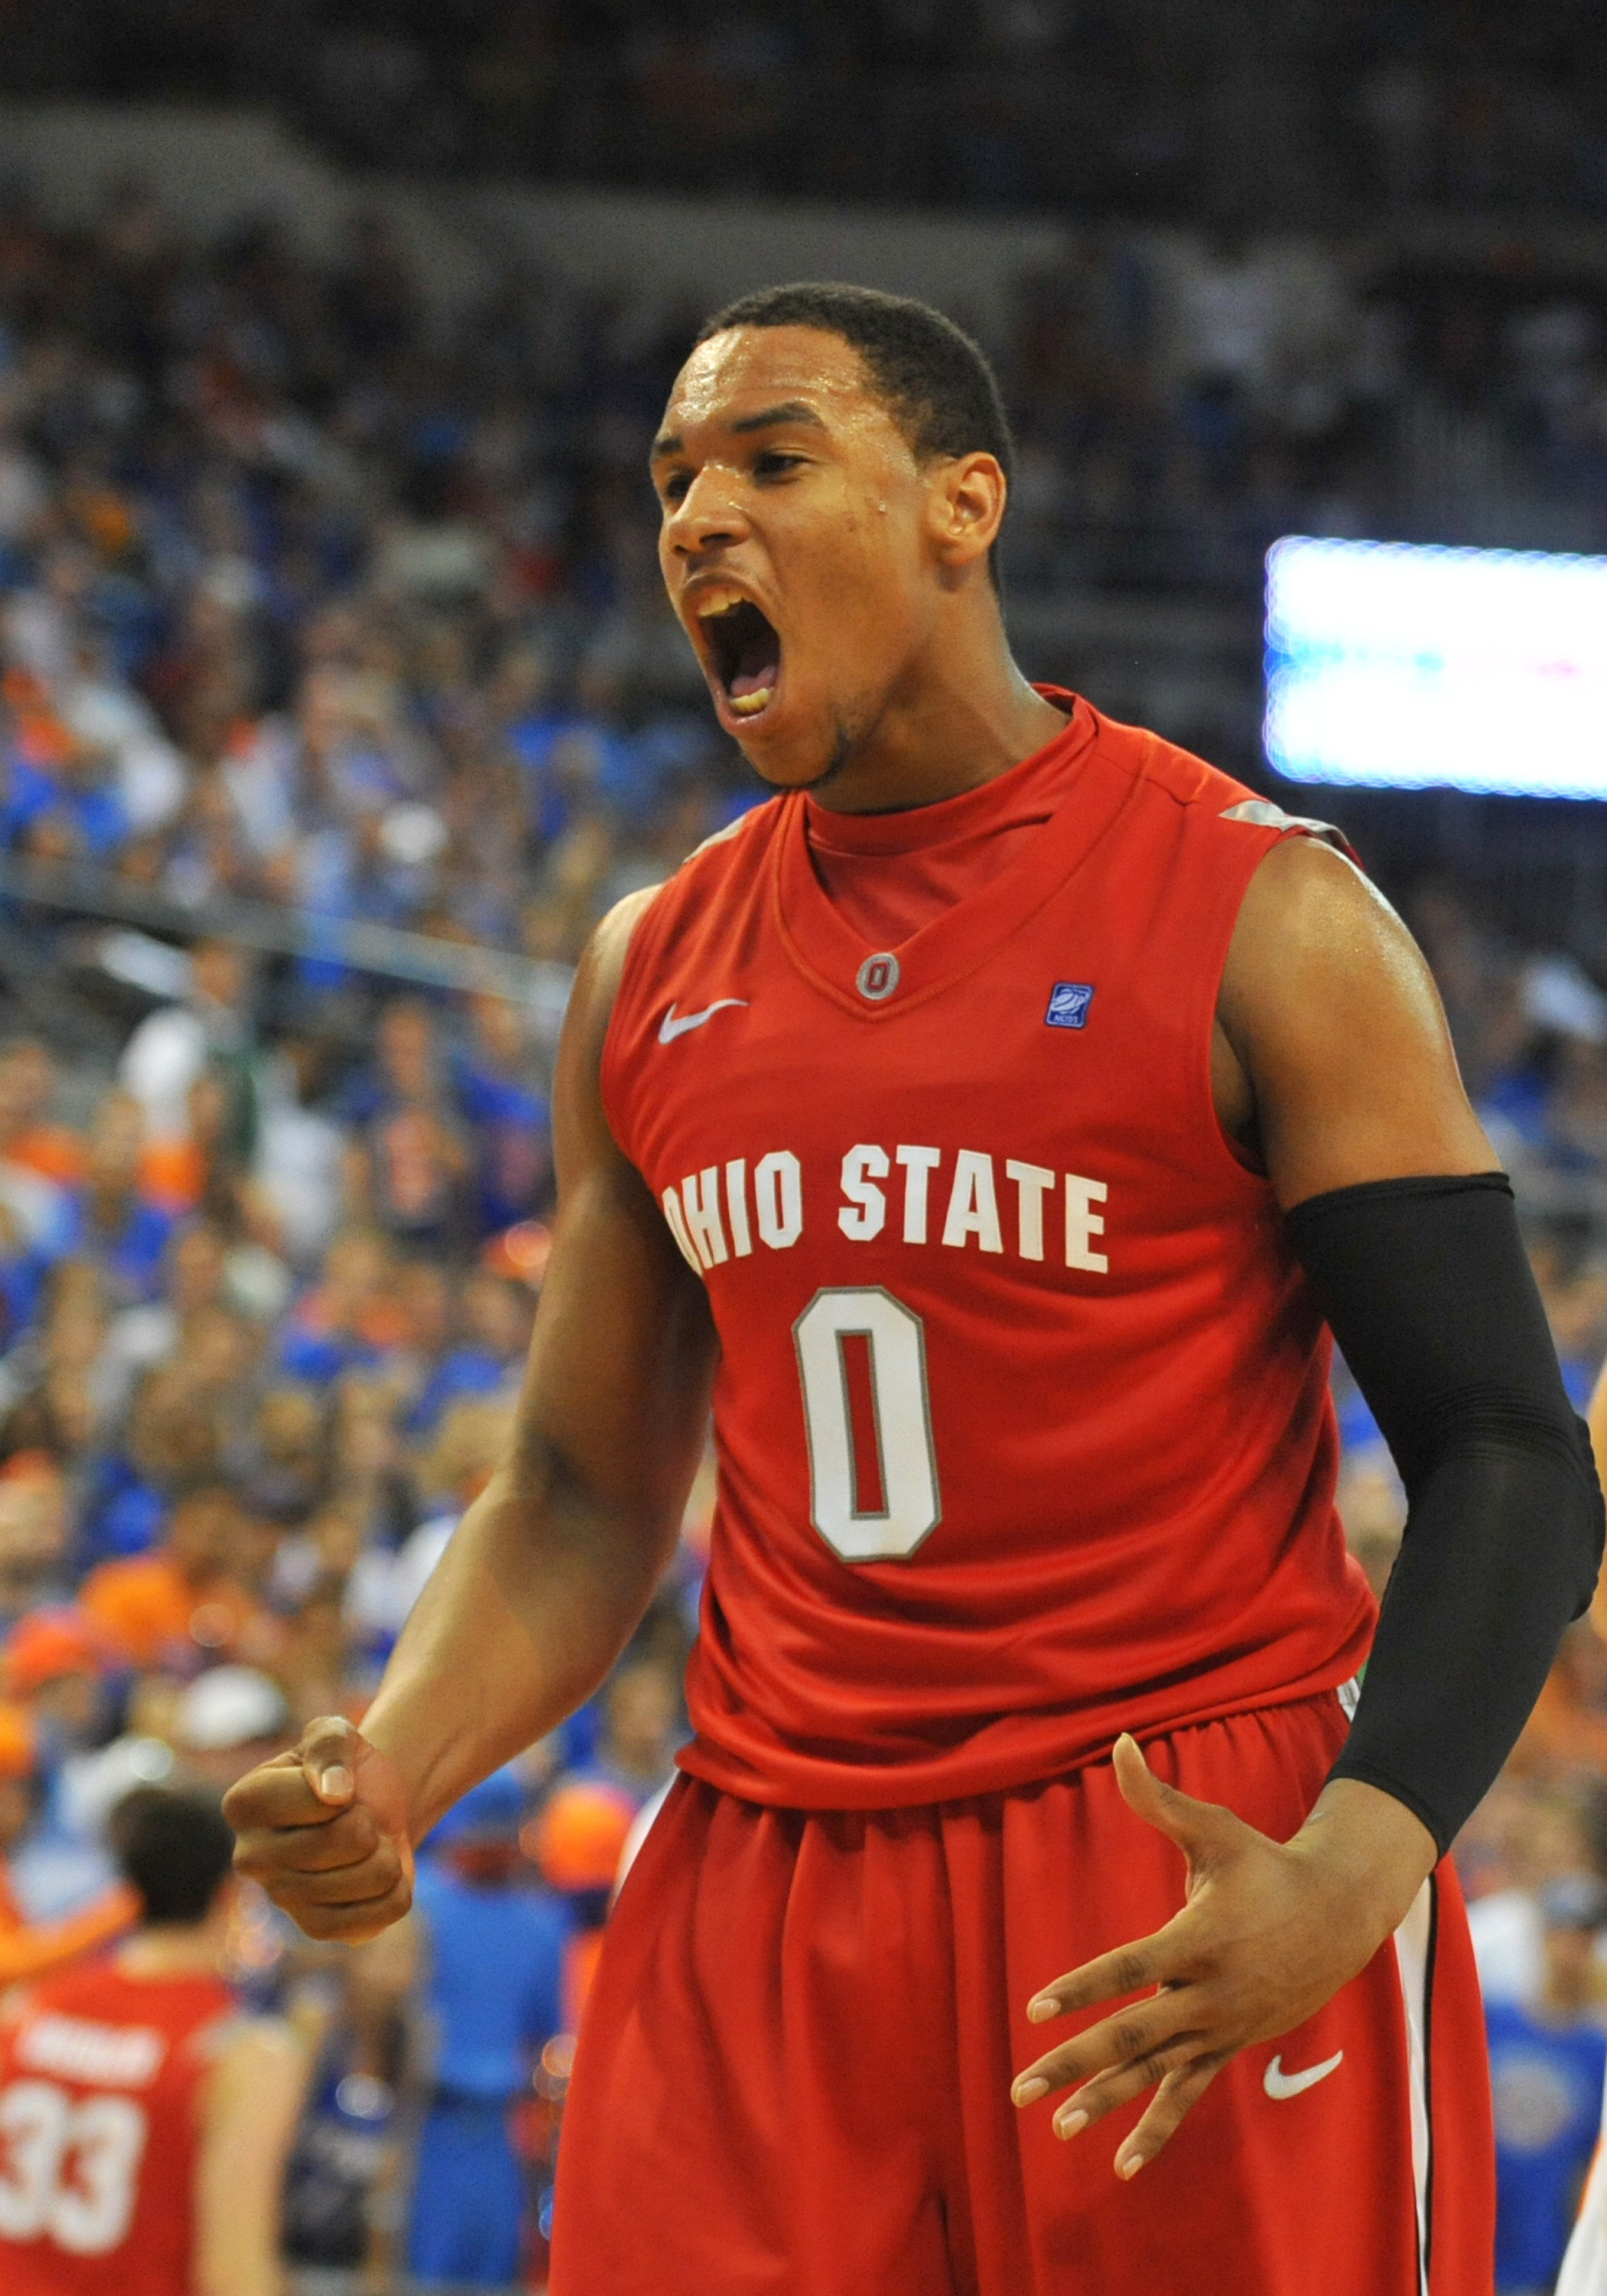 GAINESVILLE, FL - NOVEMBER 16: Forward Jared Sullinger #0 of the Ohio State Buckeyes yells after a dunk against the Florida Gators November 16, 2010 at the Stephen C. O'Connell Center in Gainesville, Florida.  (Photo by Al Messerschmidt/Getty Images)